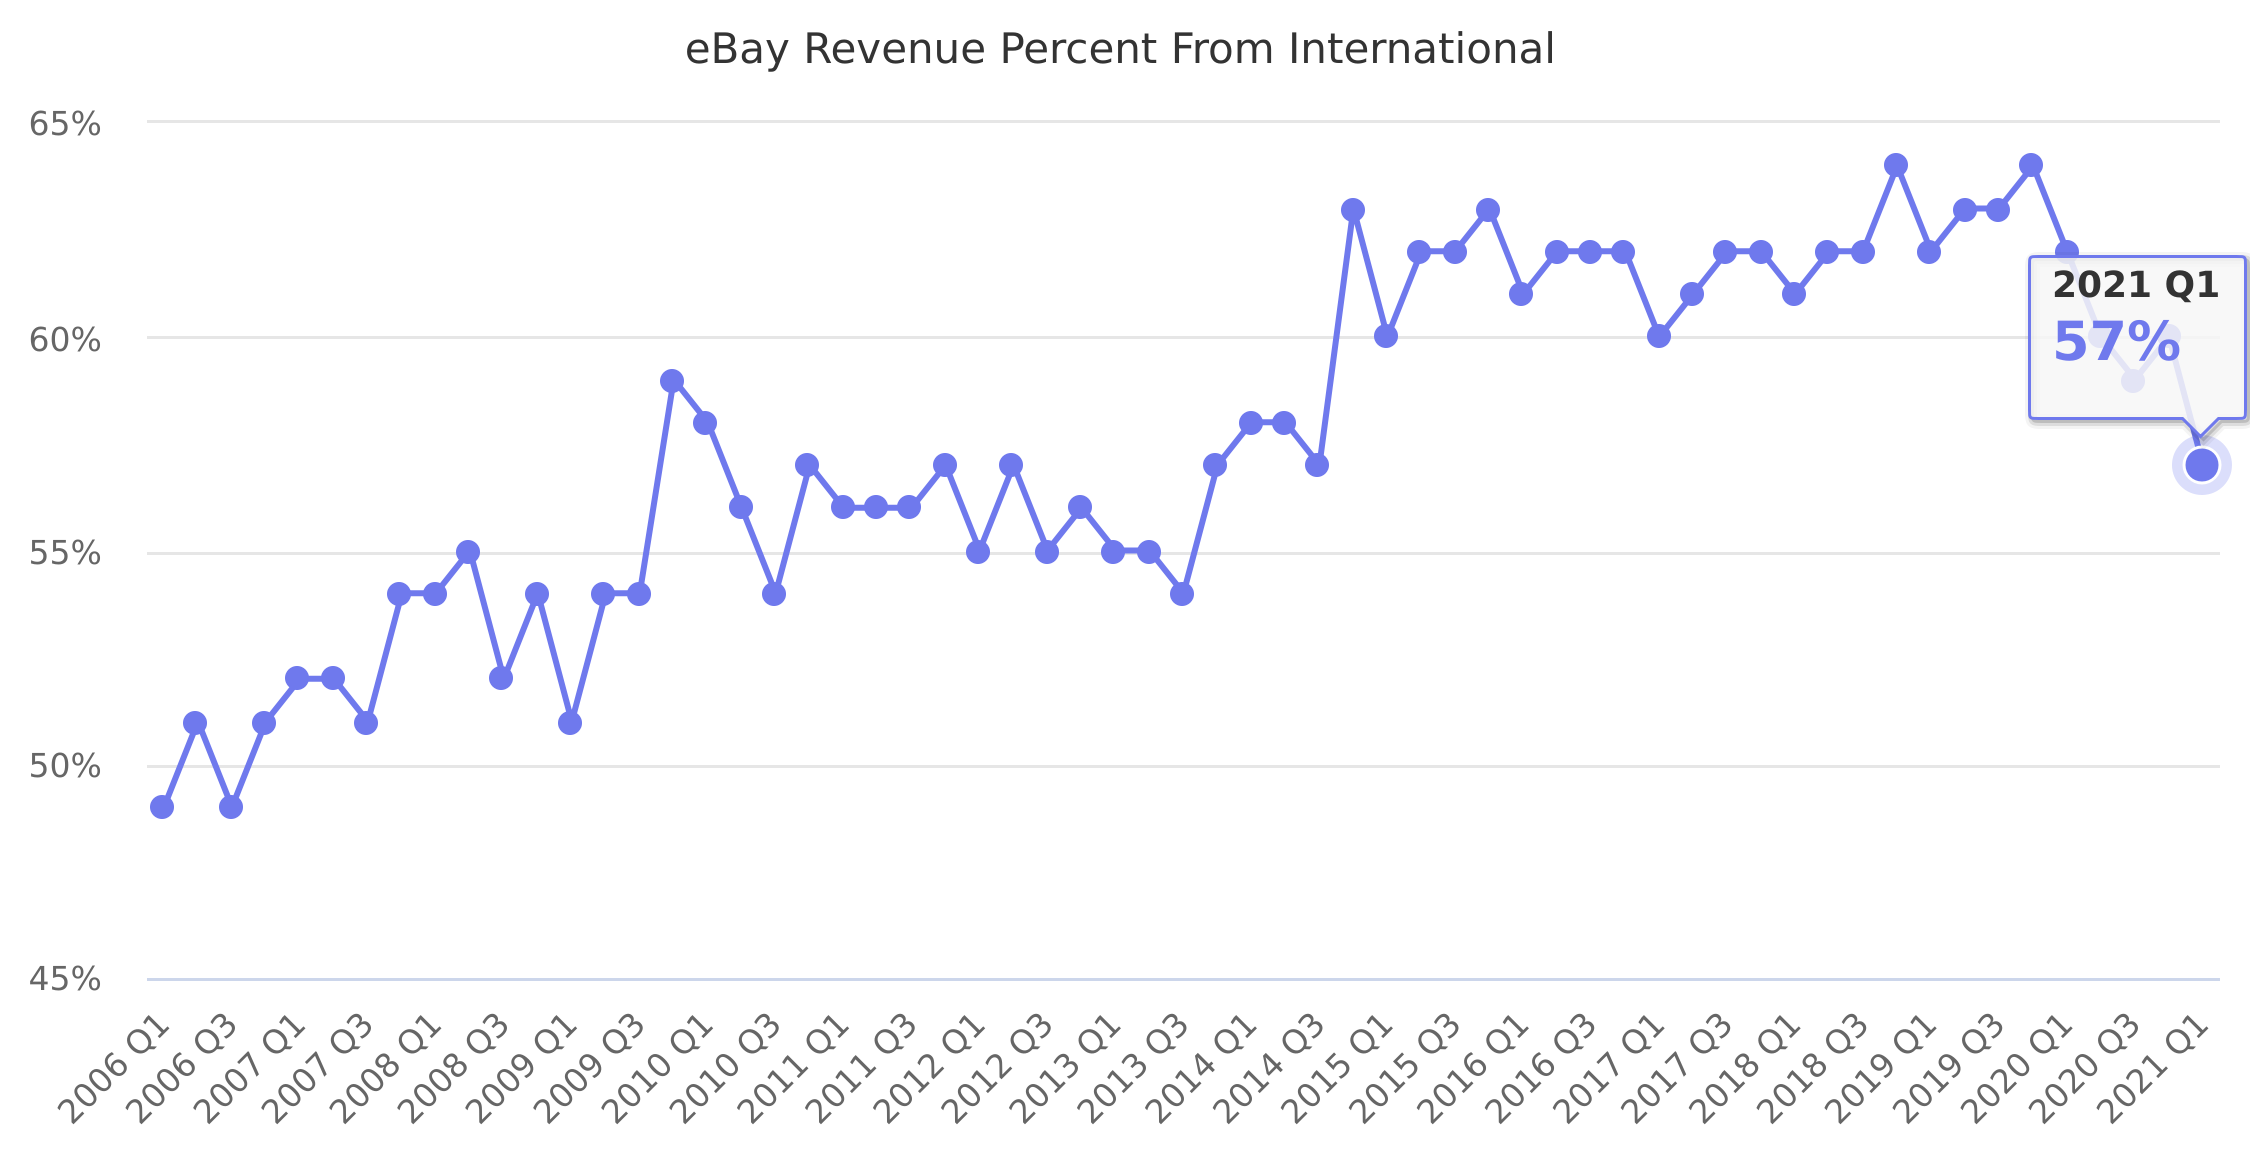 eBay Revenue Percent From International